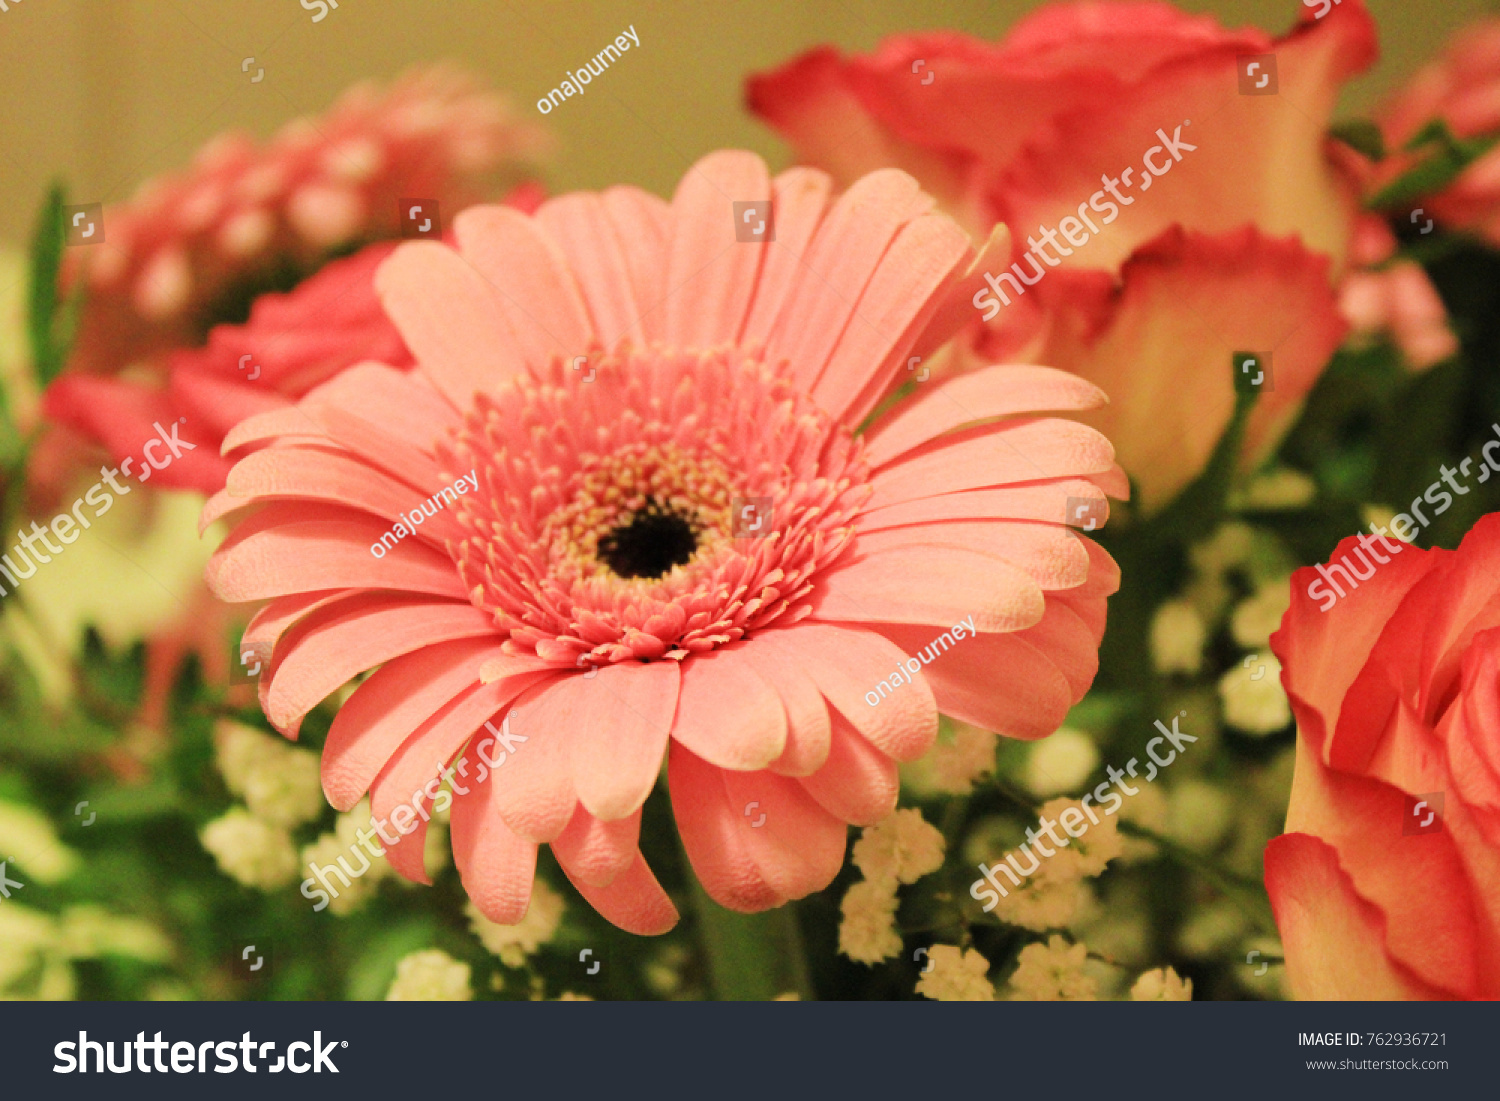 Gerbera daisy pink flower assorted bouquet stock photo edit now gerbera daisy pink flower in assorted bouquet by color close up of single beautiful flower izmirmasajfo